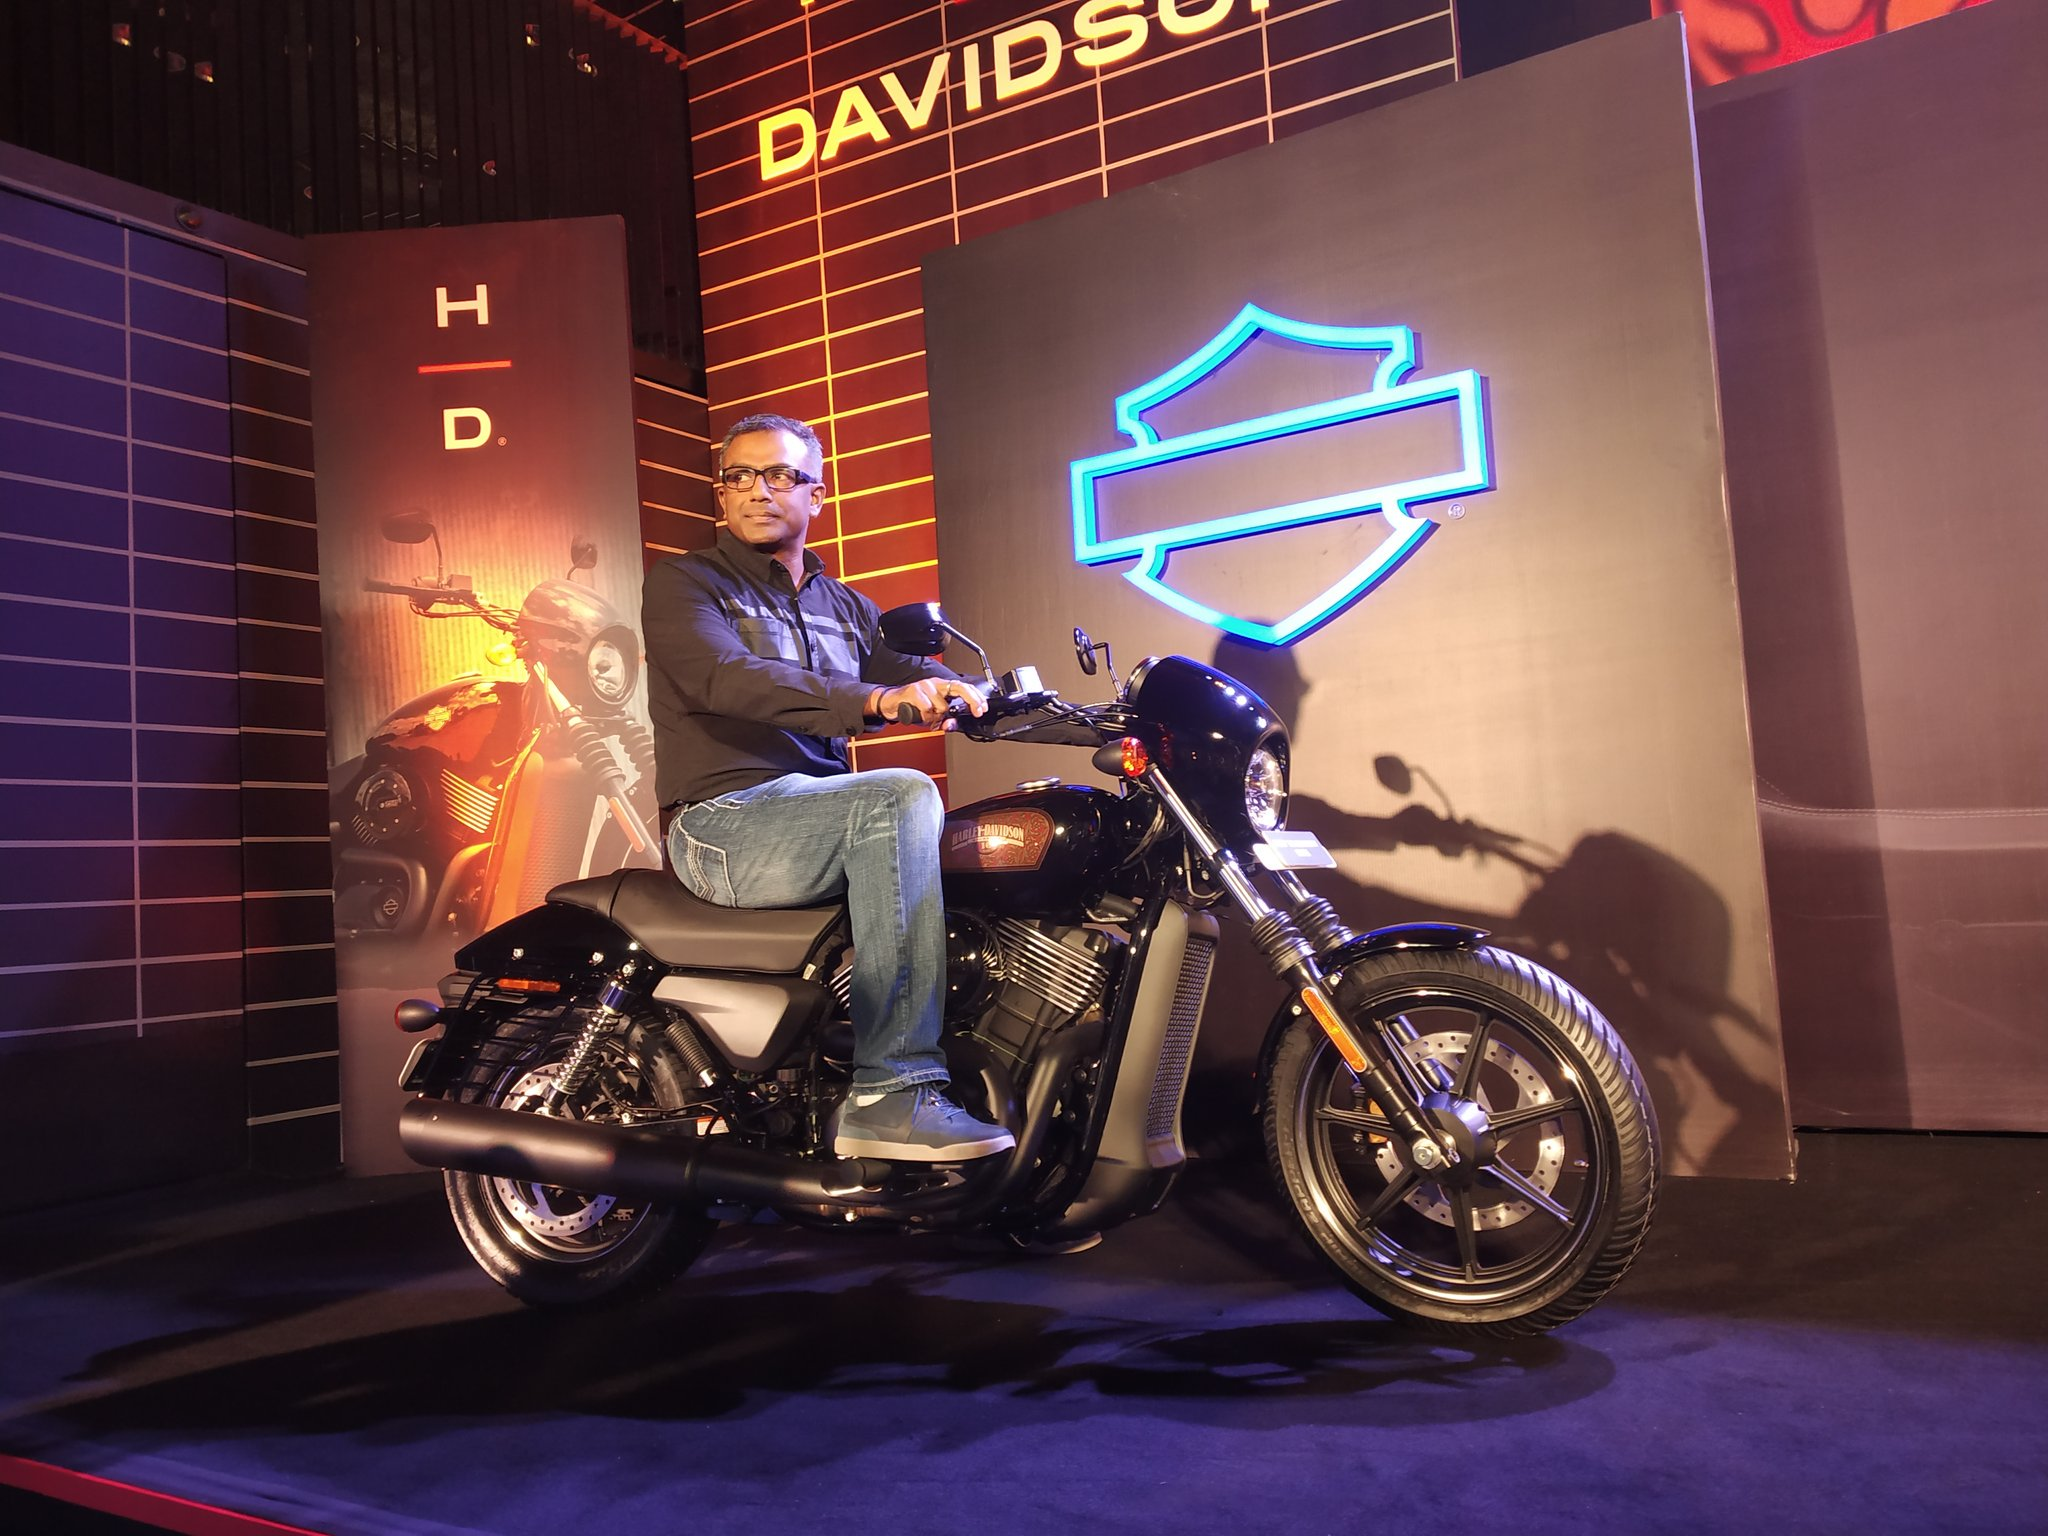 Harley Davidson launches Street 750 on its 10th anniversary in India